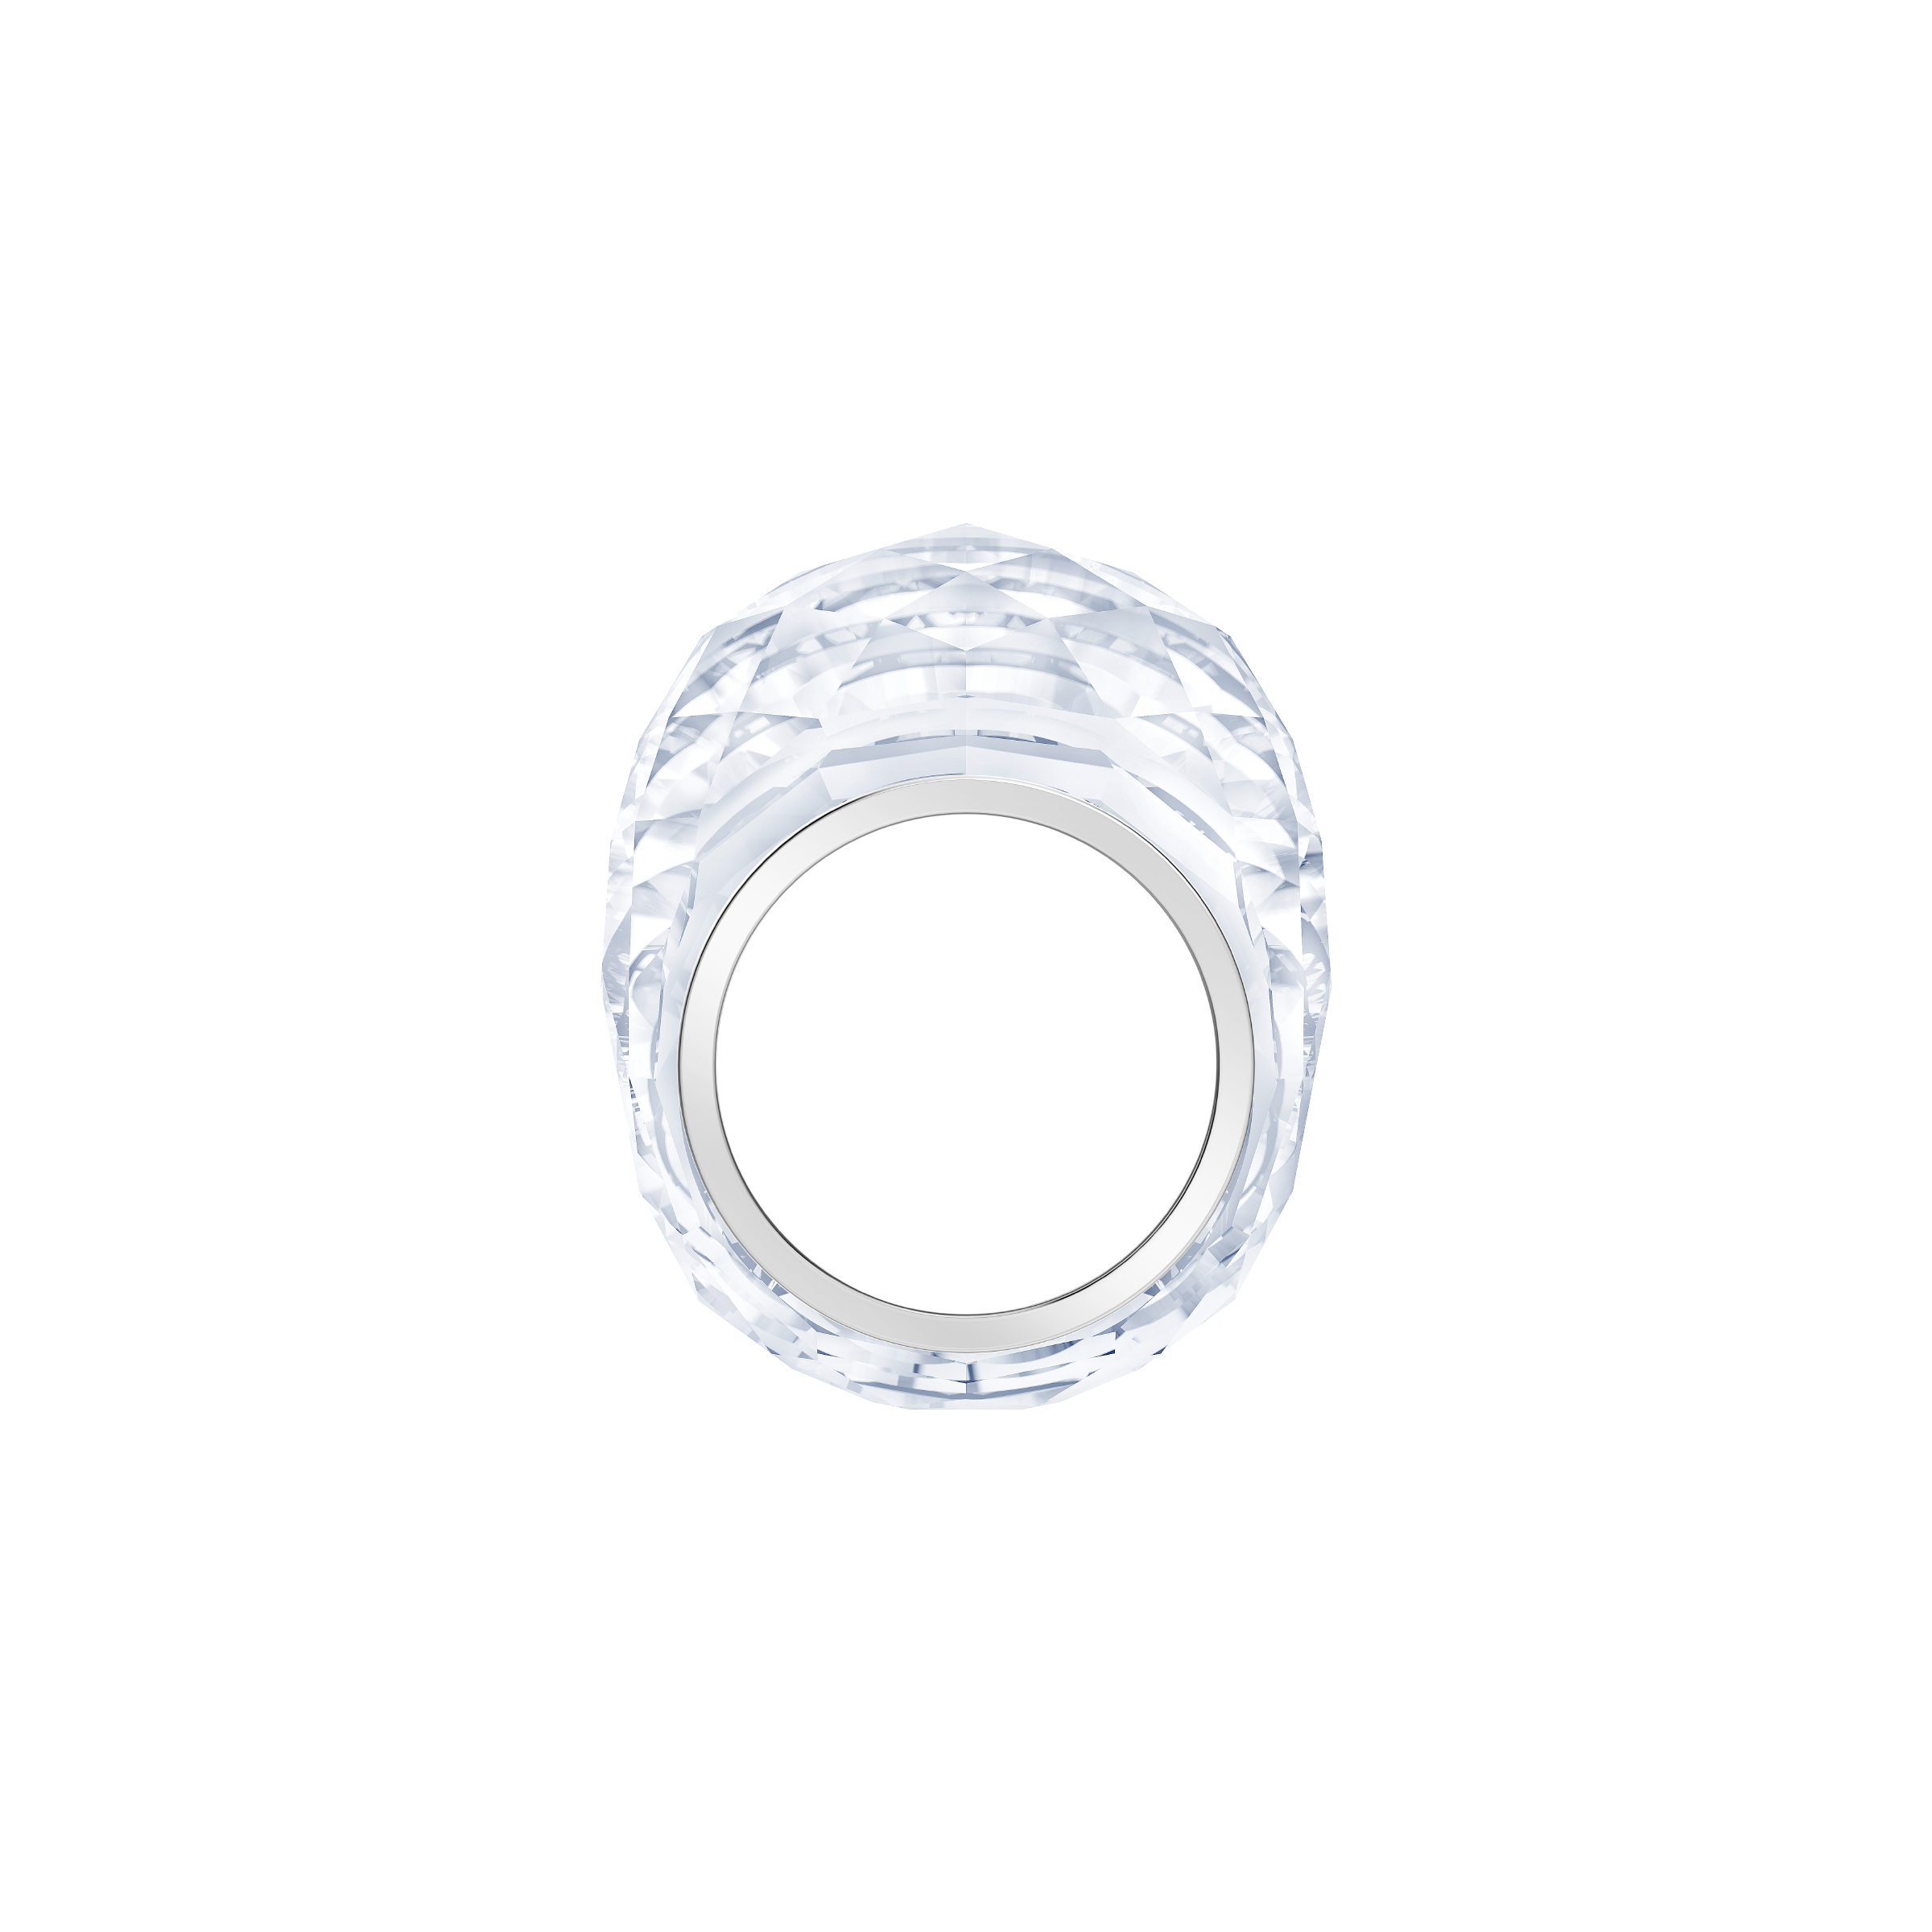 Nirvana Ring, White, Stainless Steel